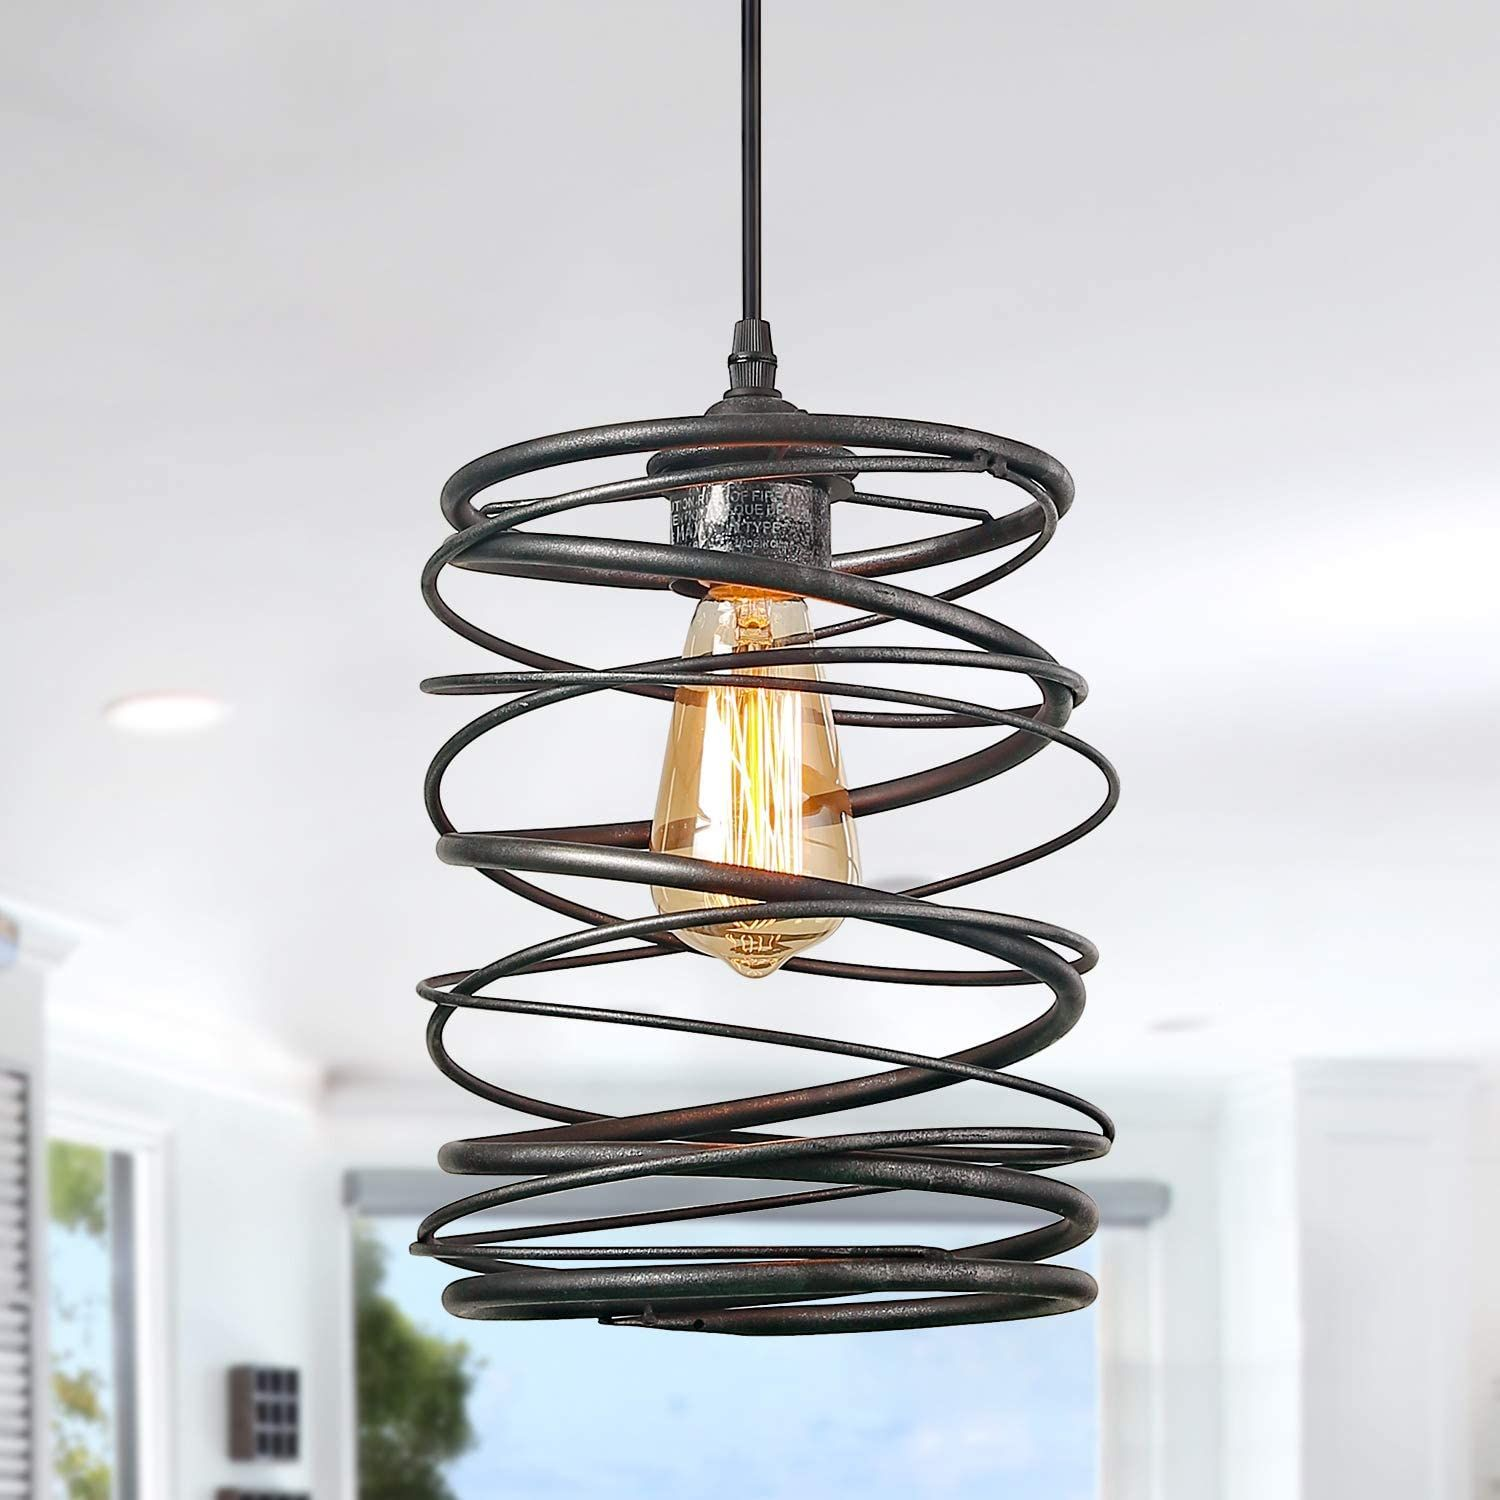 lnc a03292 pendant lighting for kitchen island,rustic